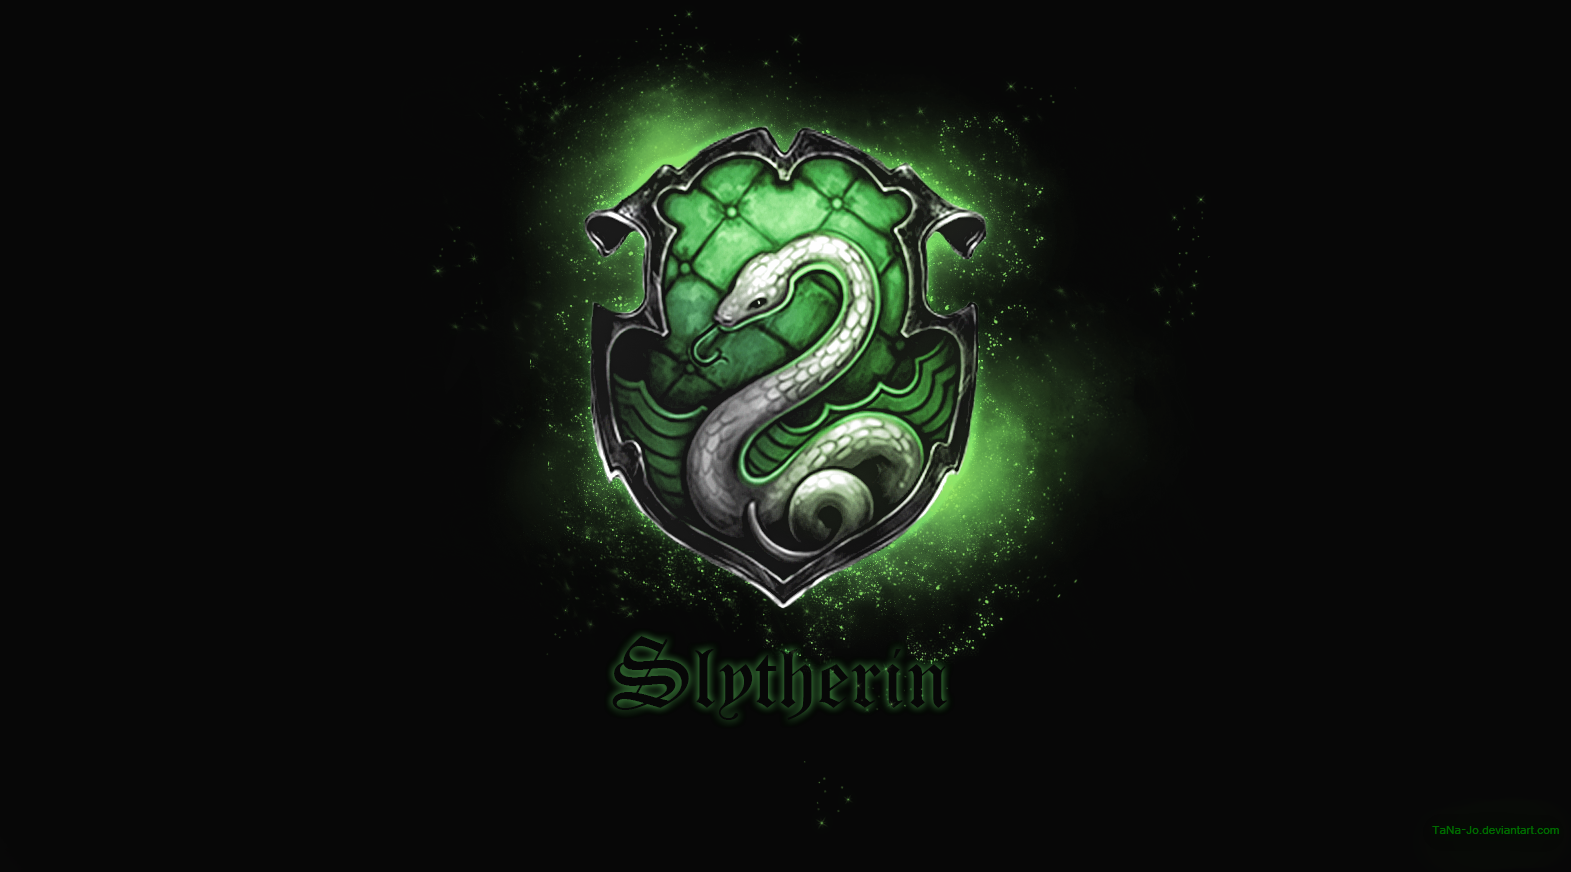 Most Inspiring Wallpaper Harry Potter Full Hd - slytherin_wallpaper_hd_by_tana_jo-d7kayku  Collection_266869.png